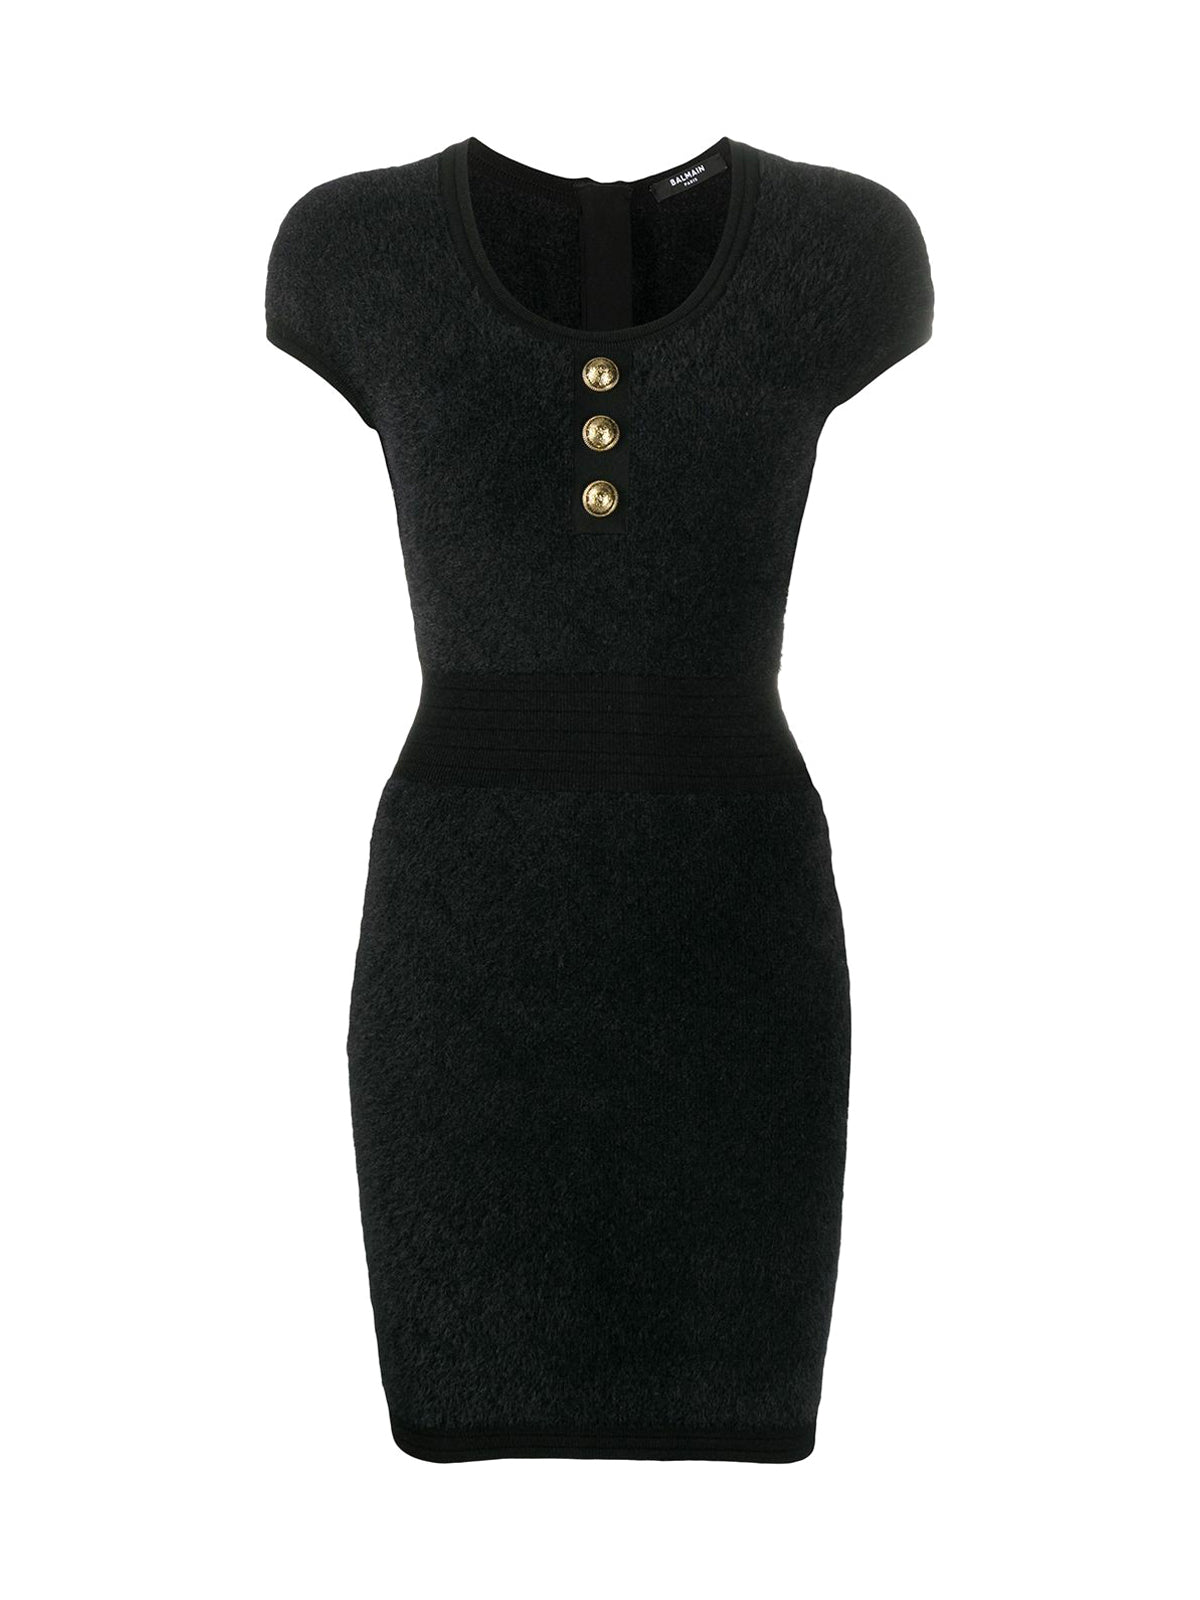 embossed-button knitted dress